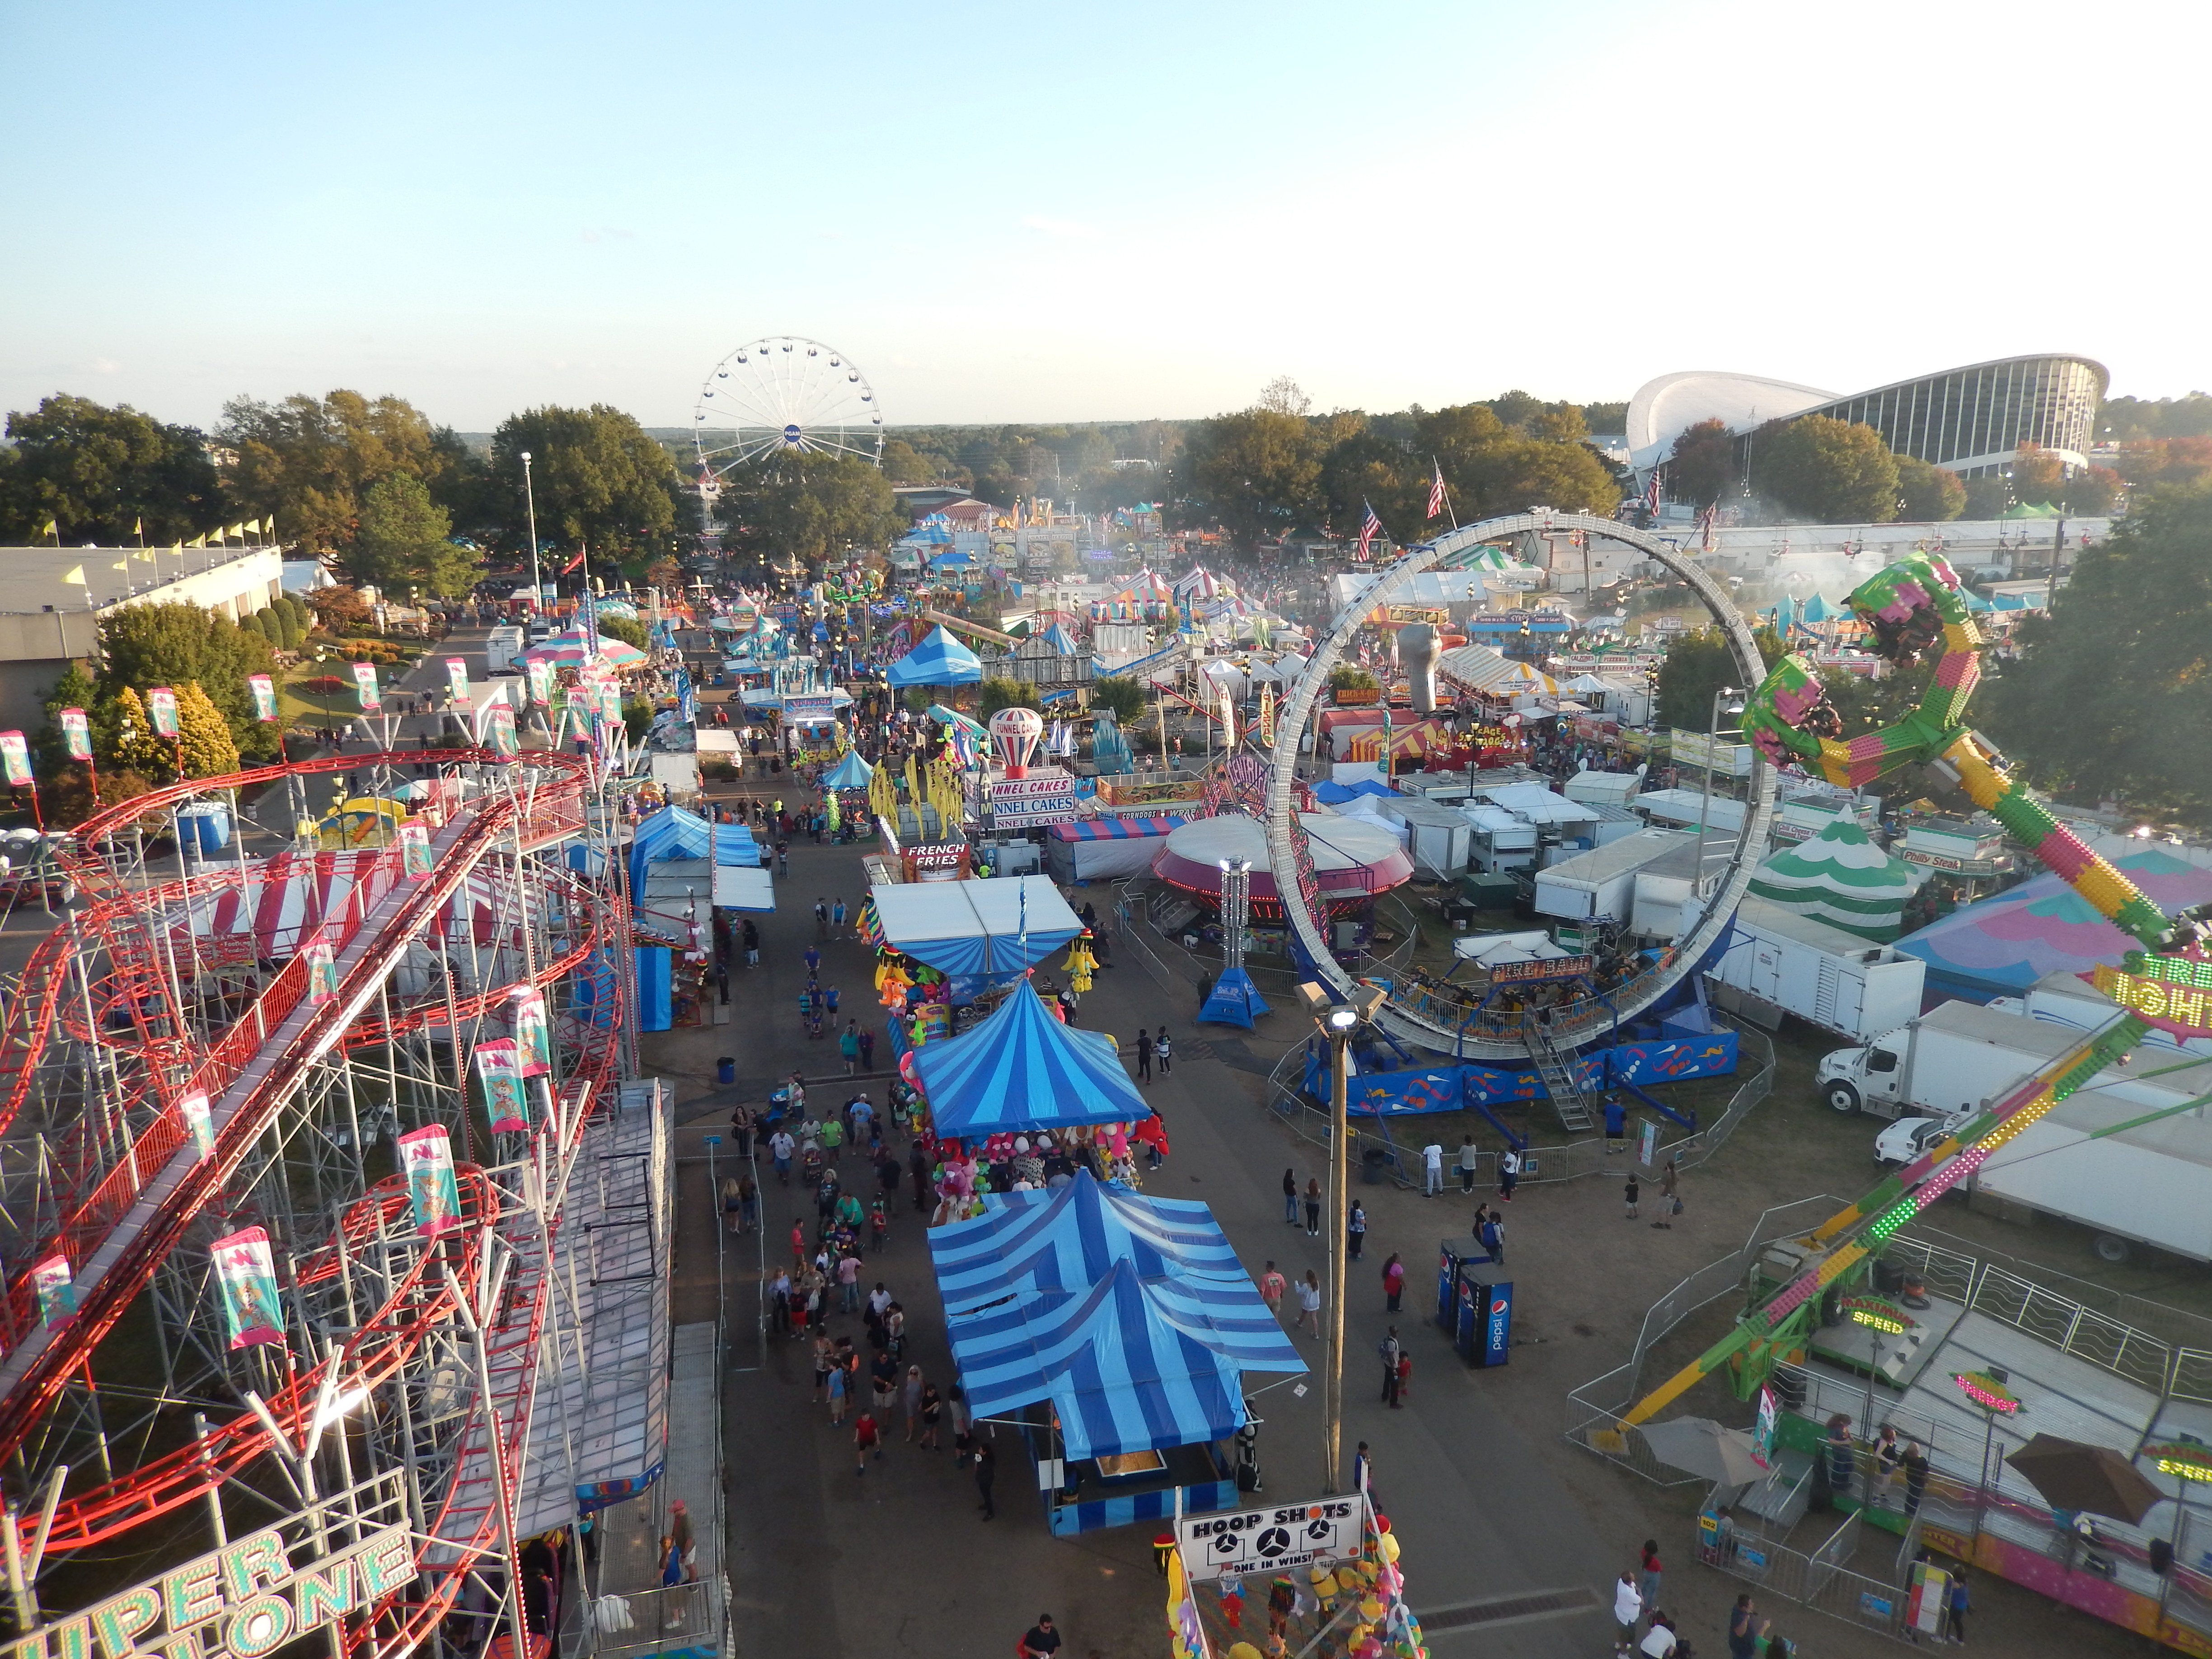 In Our Travels We Have Attended State Fairs All Over The Country And We Make  A Point Of Attending The North Carolina State Fair Whenever We Are Here In  The